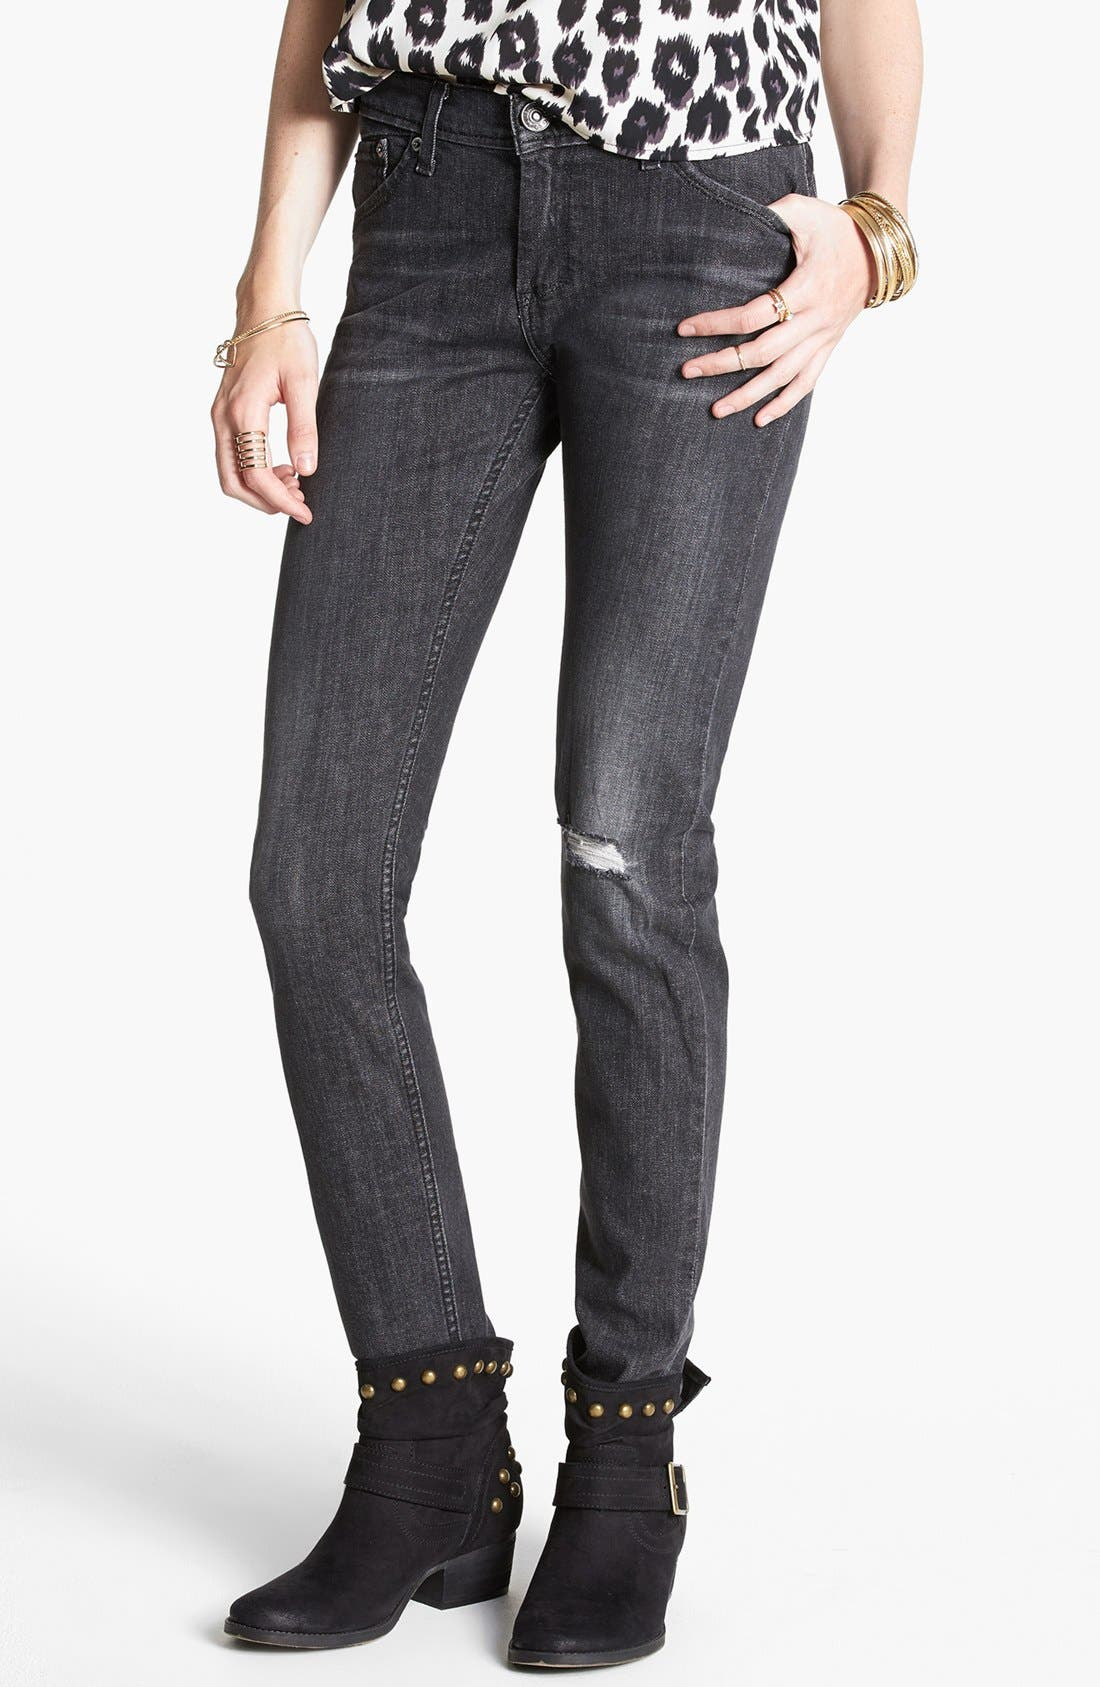 Alternate Image 1 Selected - Levi's® Boyfriend Skinny Jeans (Medium)